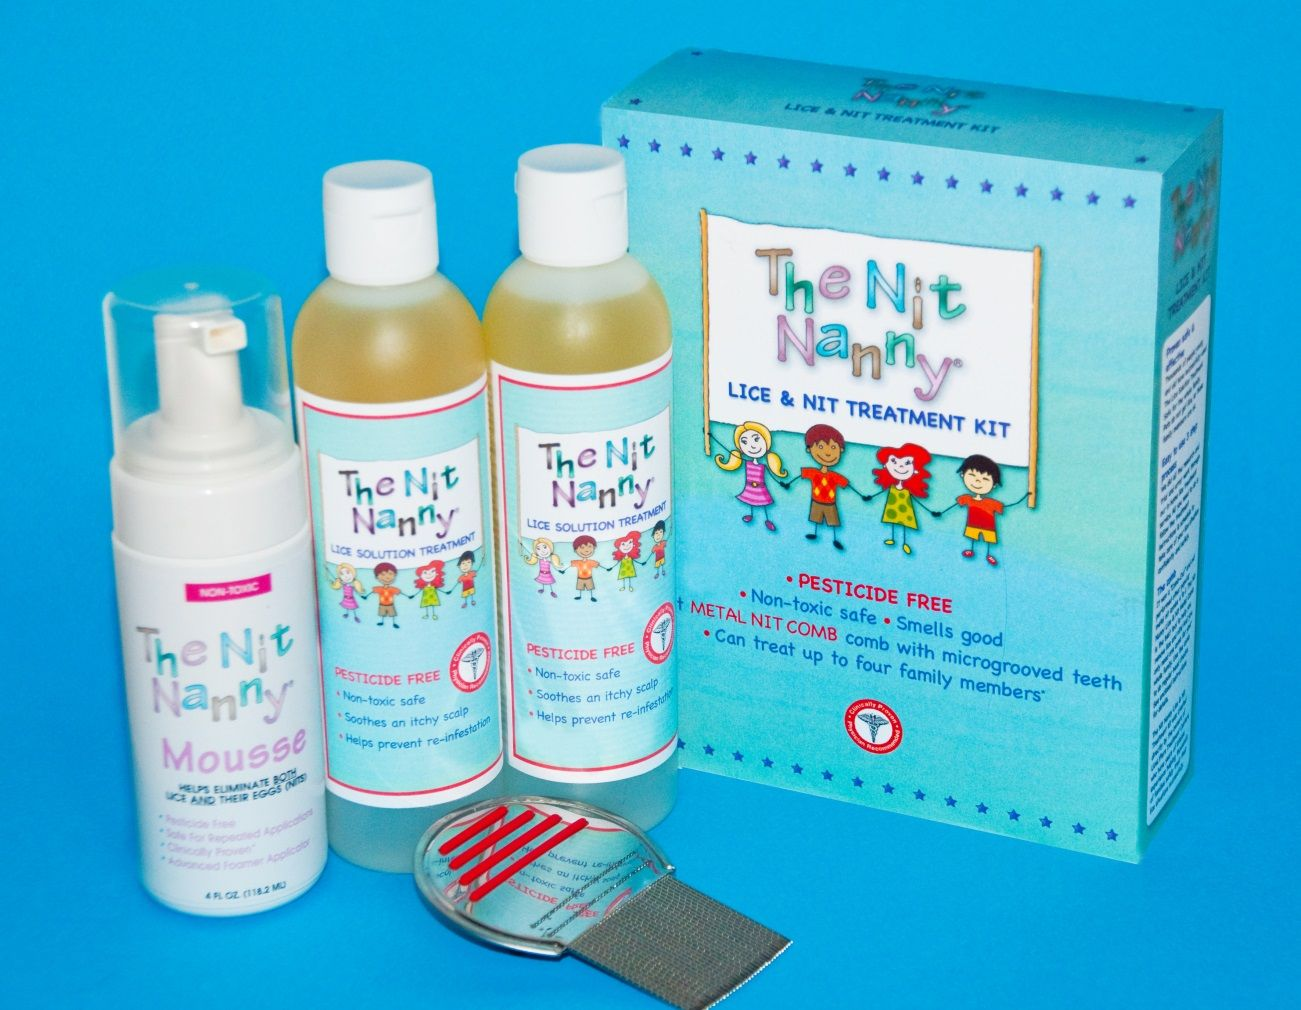 AllNatural lice treatment products enitnanny  All